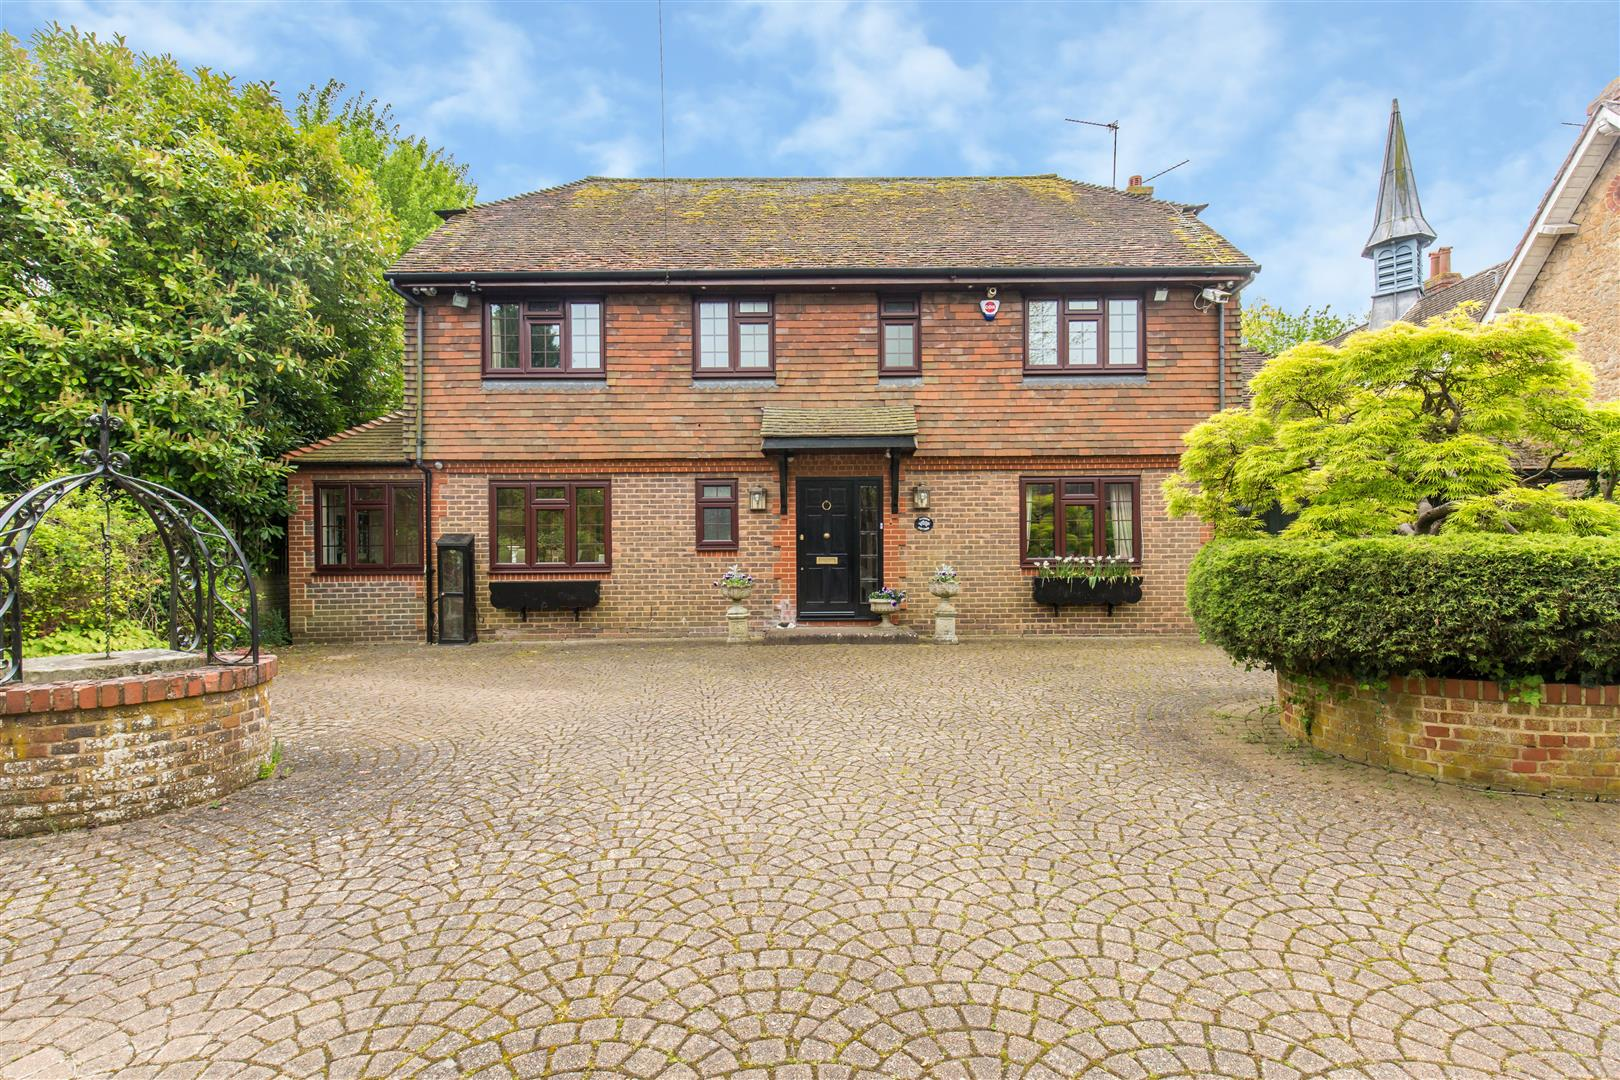 3 Bedrooms Detached House for sale in High Street, Brasted, Westerham